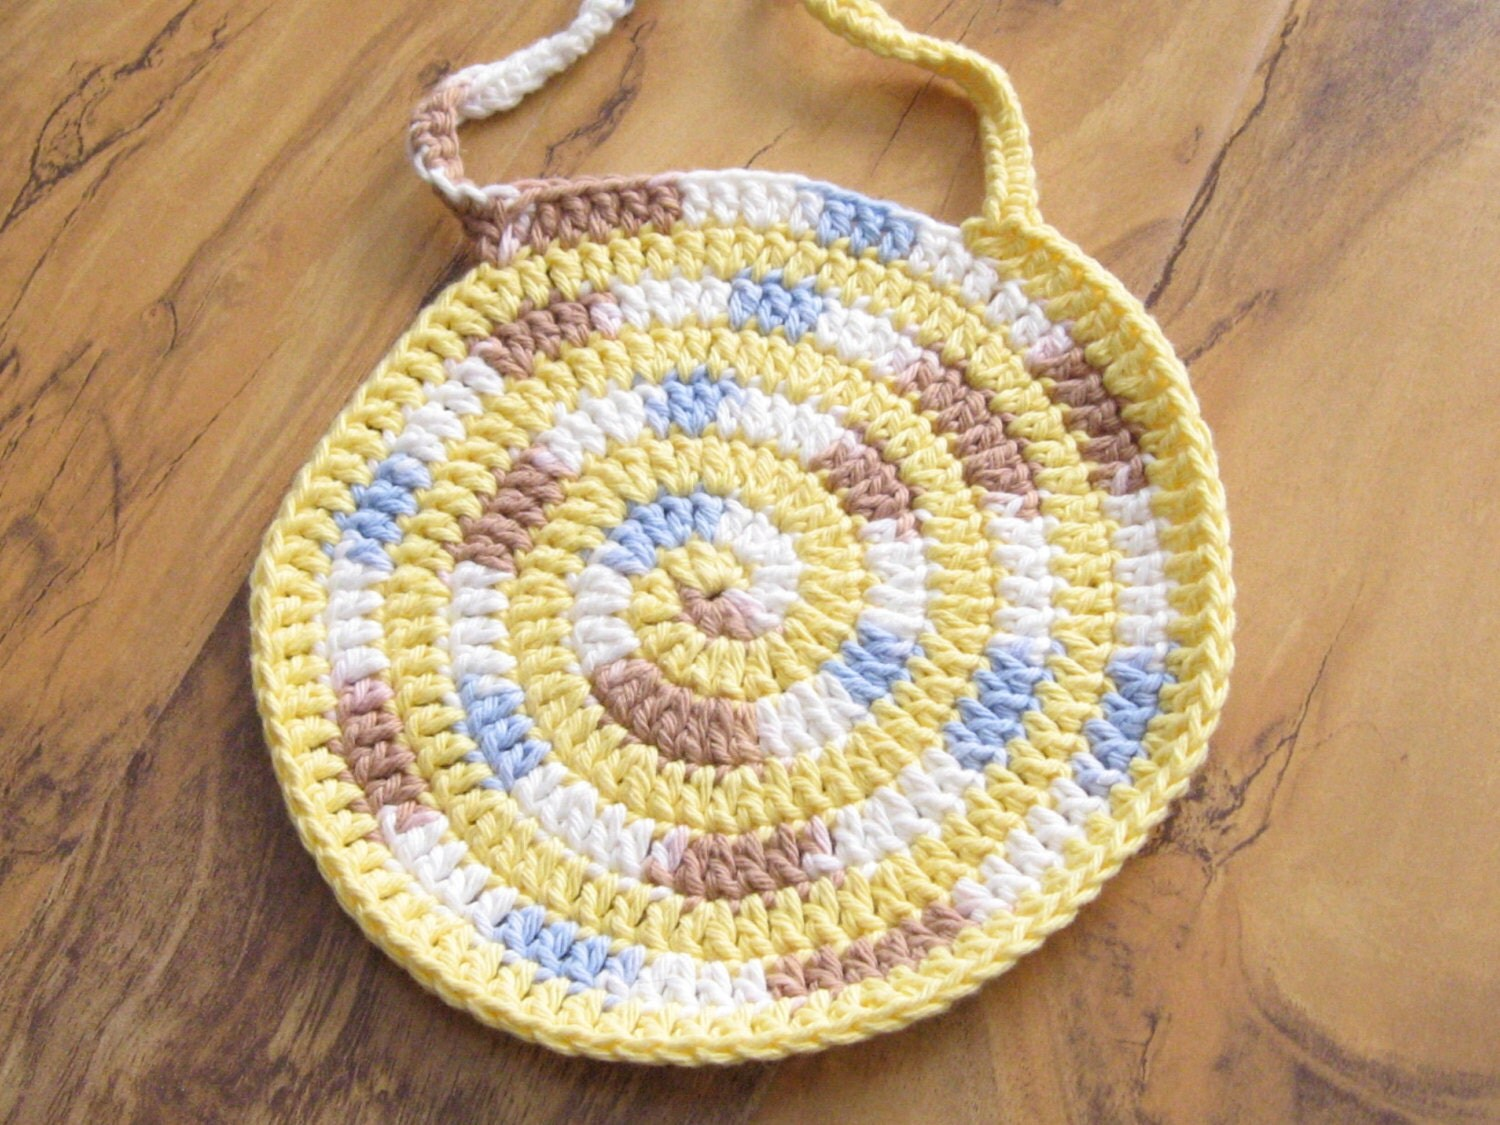 Handmade Crochet Cotton Baby Bib Swirly Yellow Brown and Blue